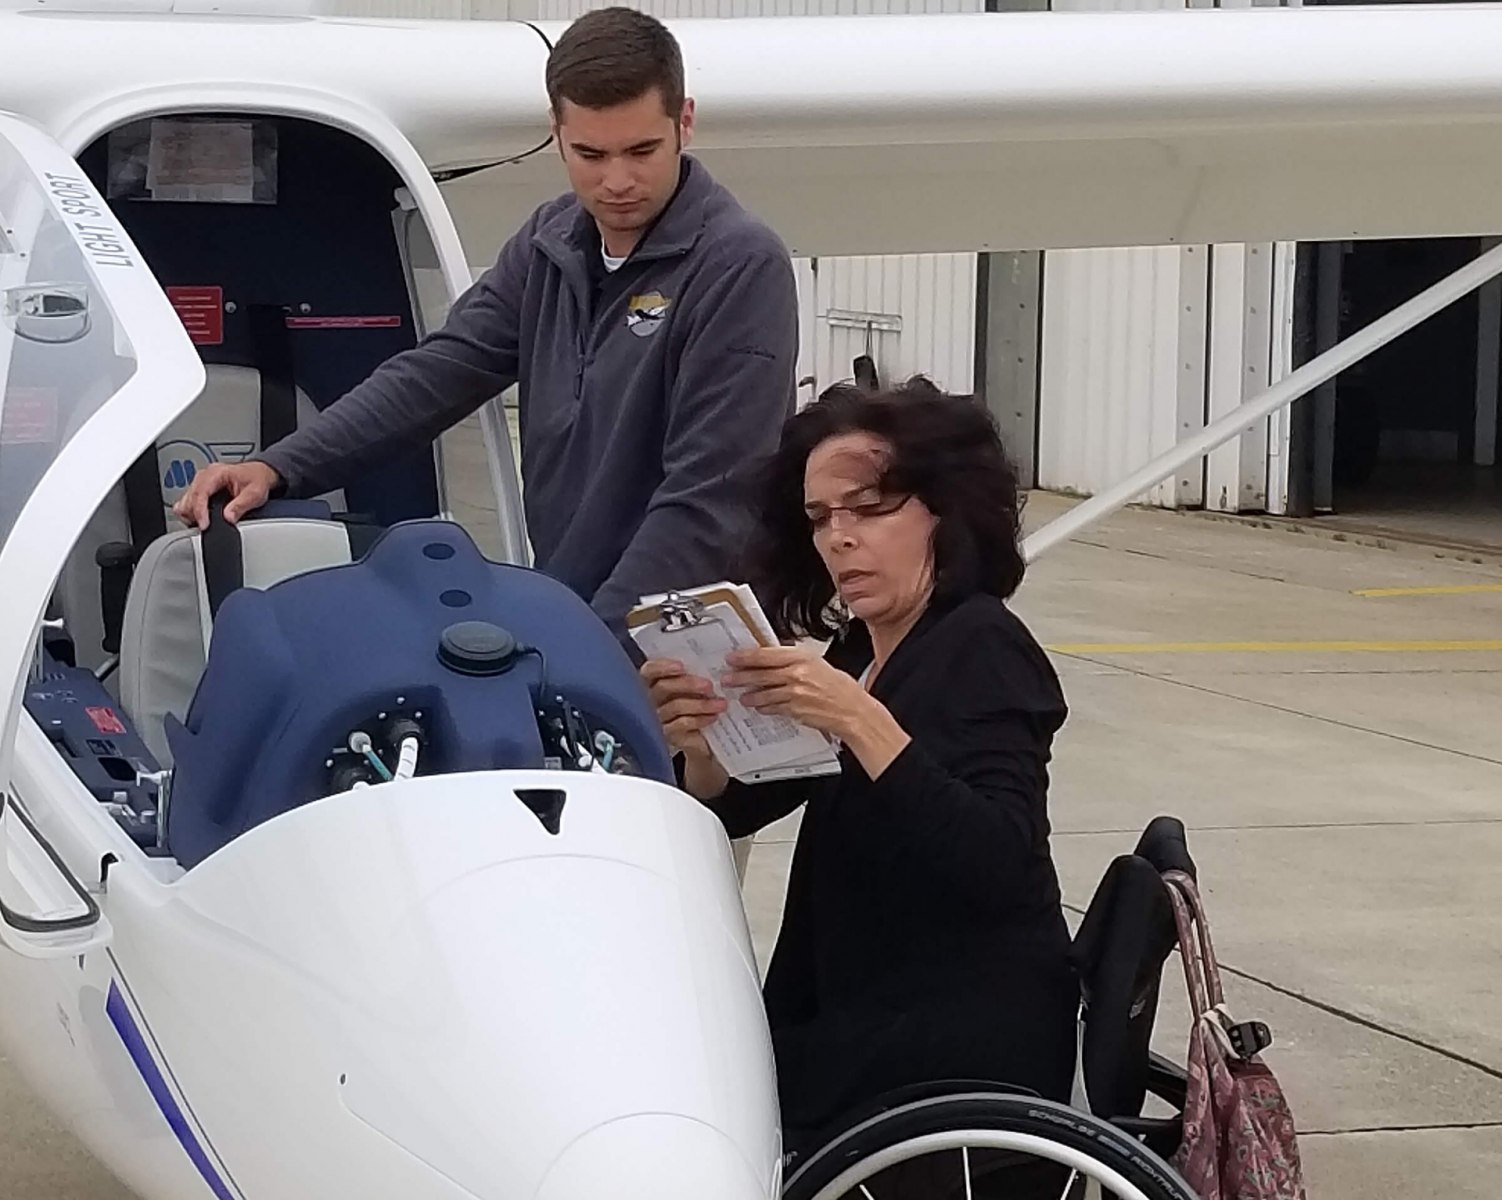 Able Flight student Emily Hupe of California goes through her pre-flight checklist last year at Purdue University Airport. (Purdue University photo/Brian Huchel)